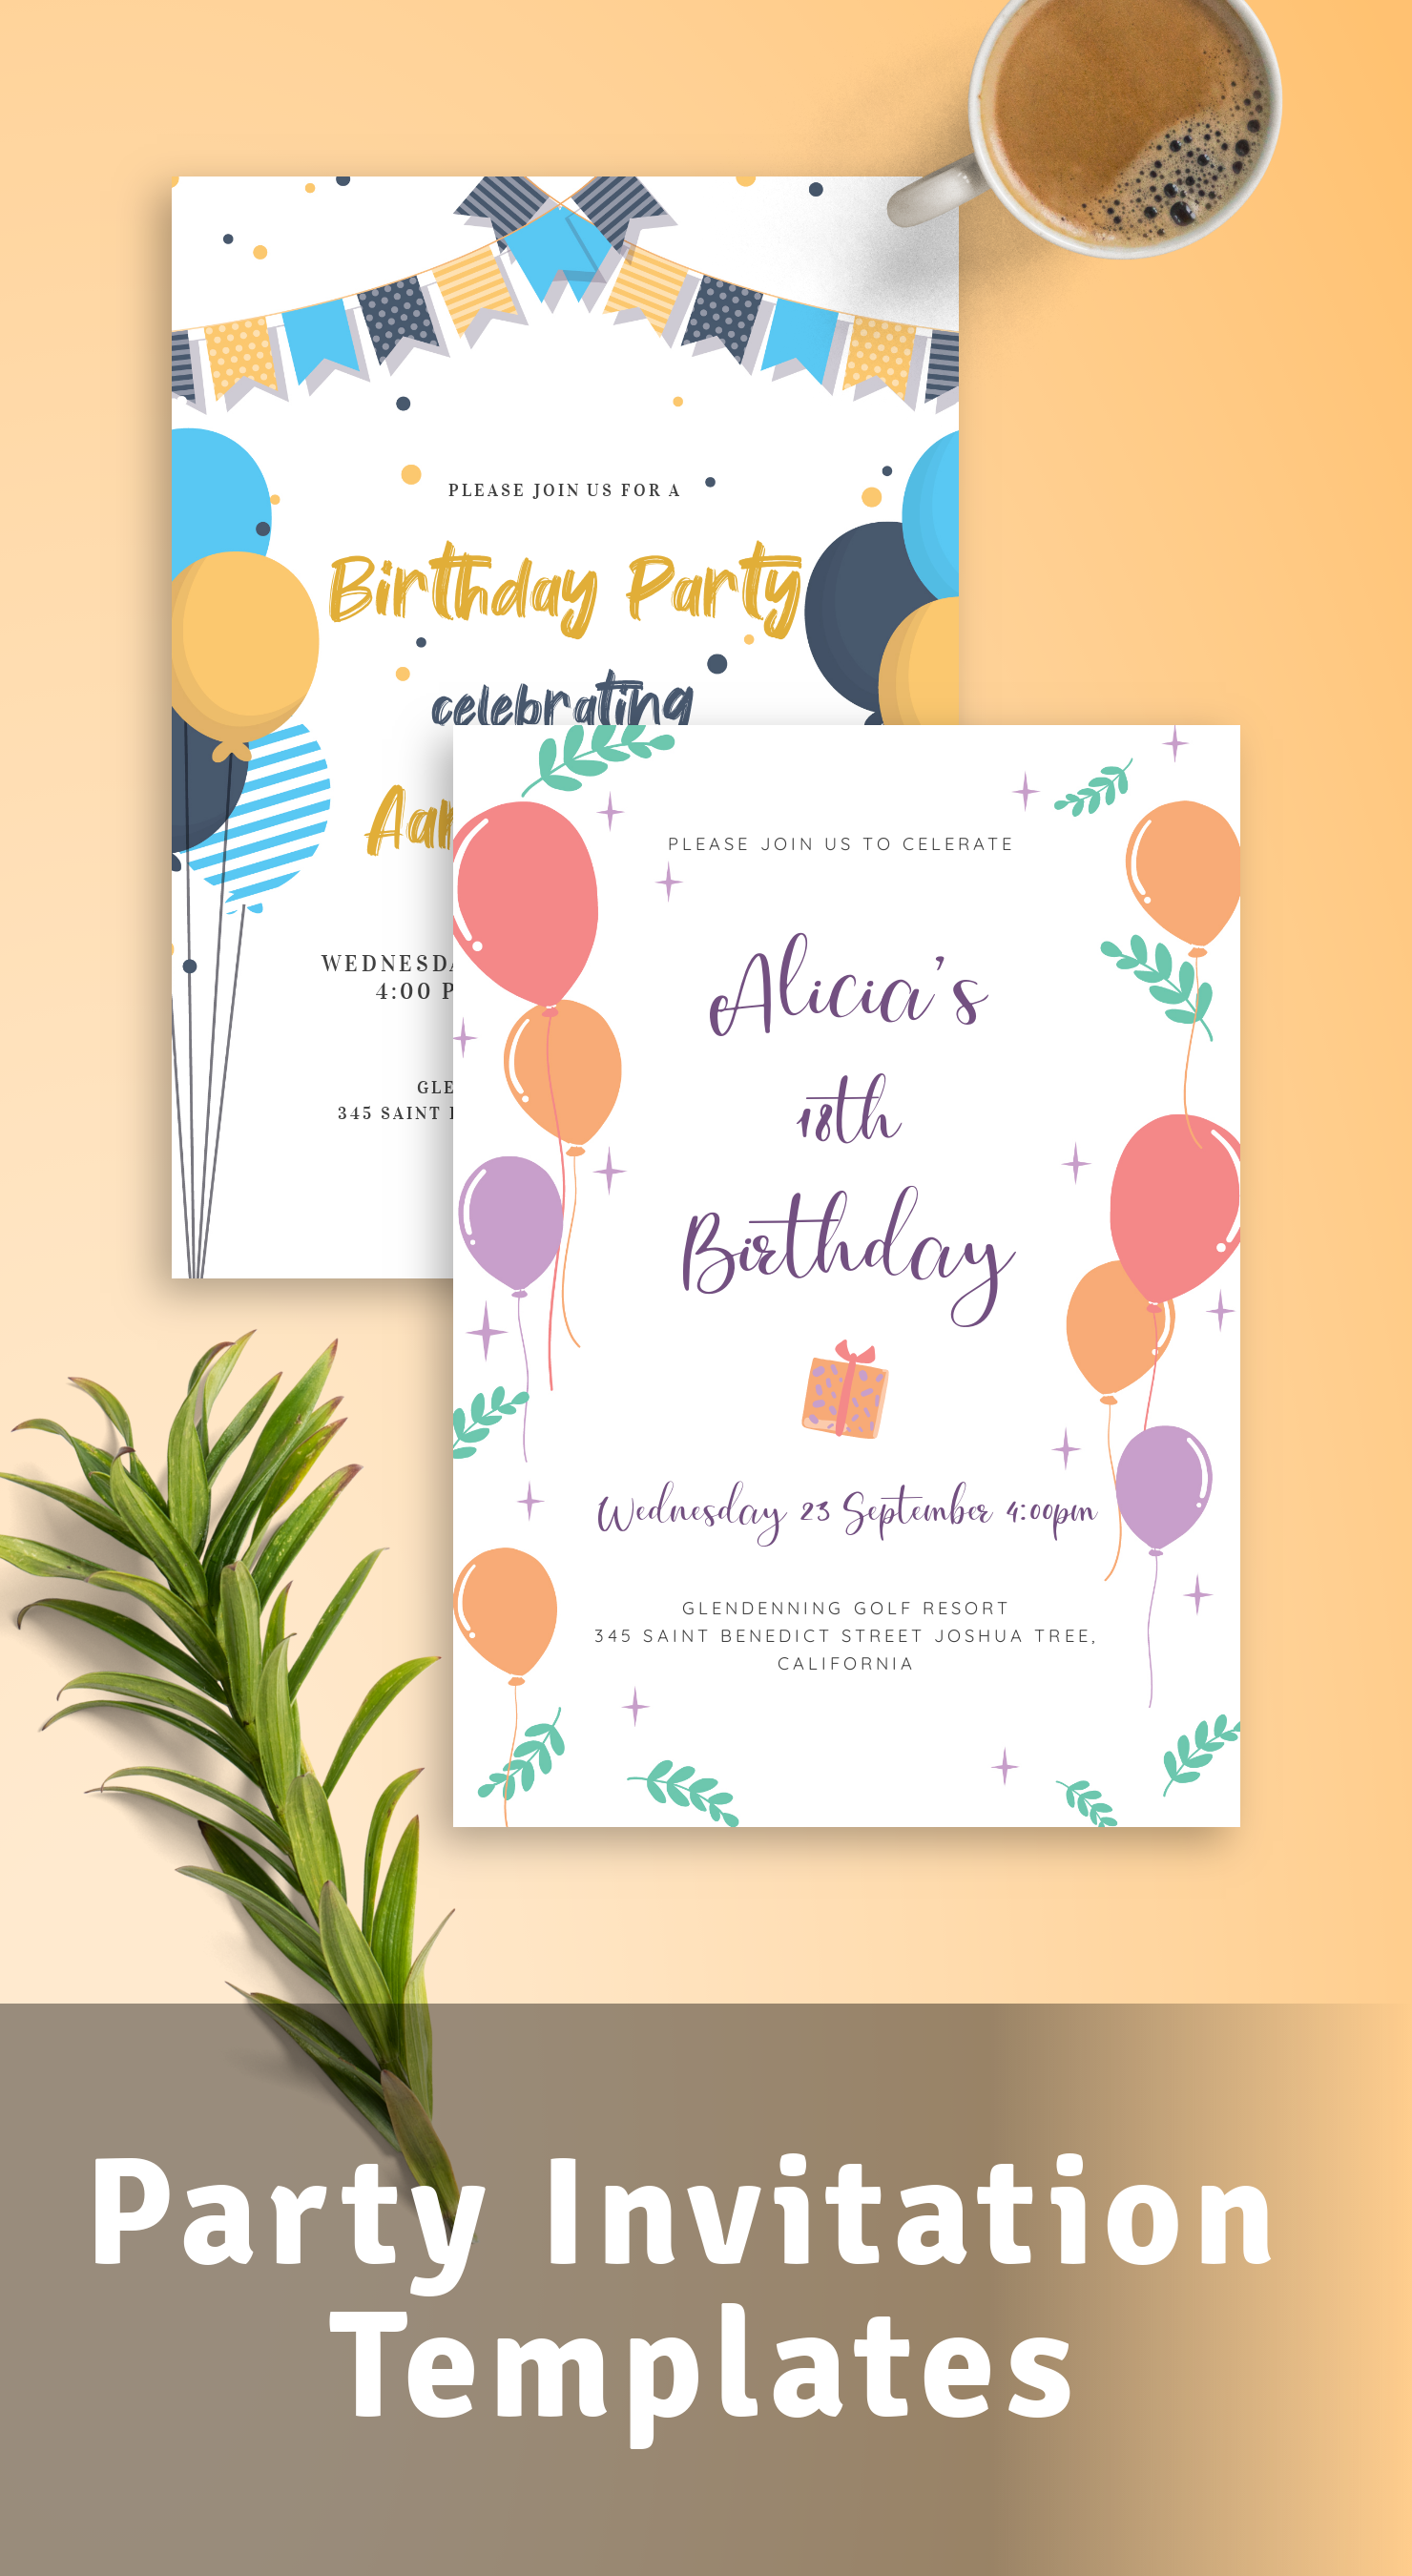 Best Party Invitation Templates